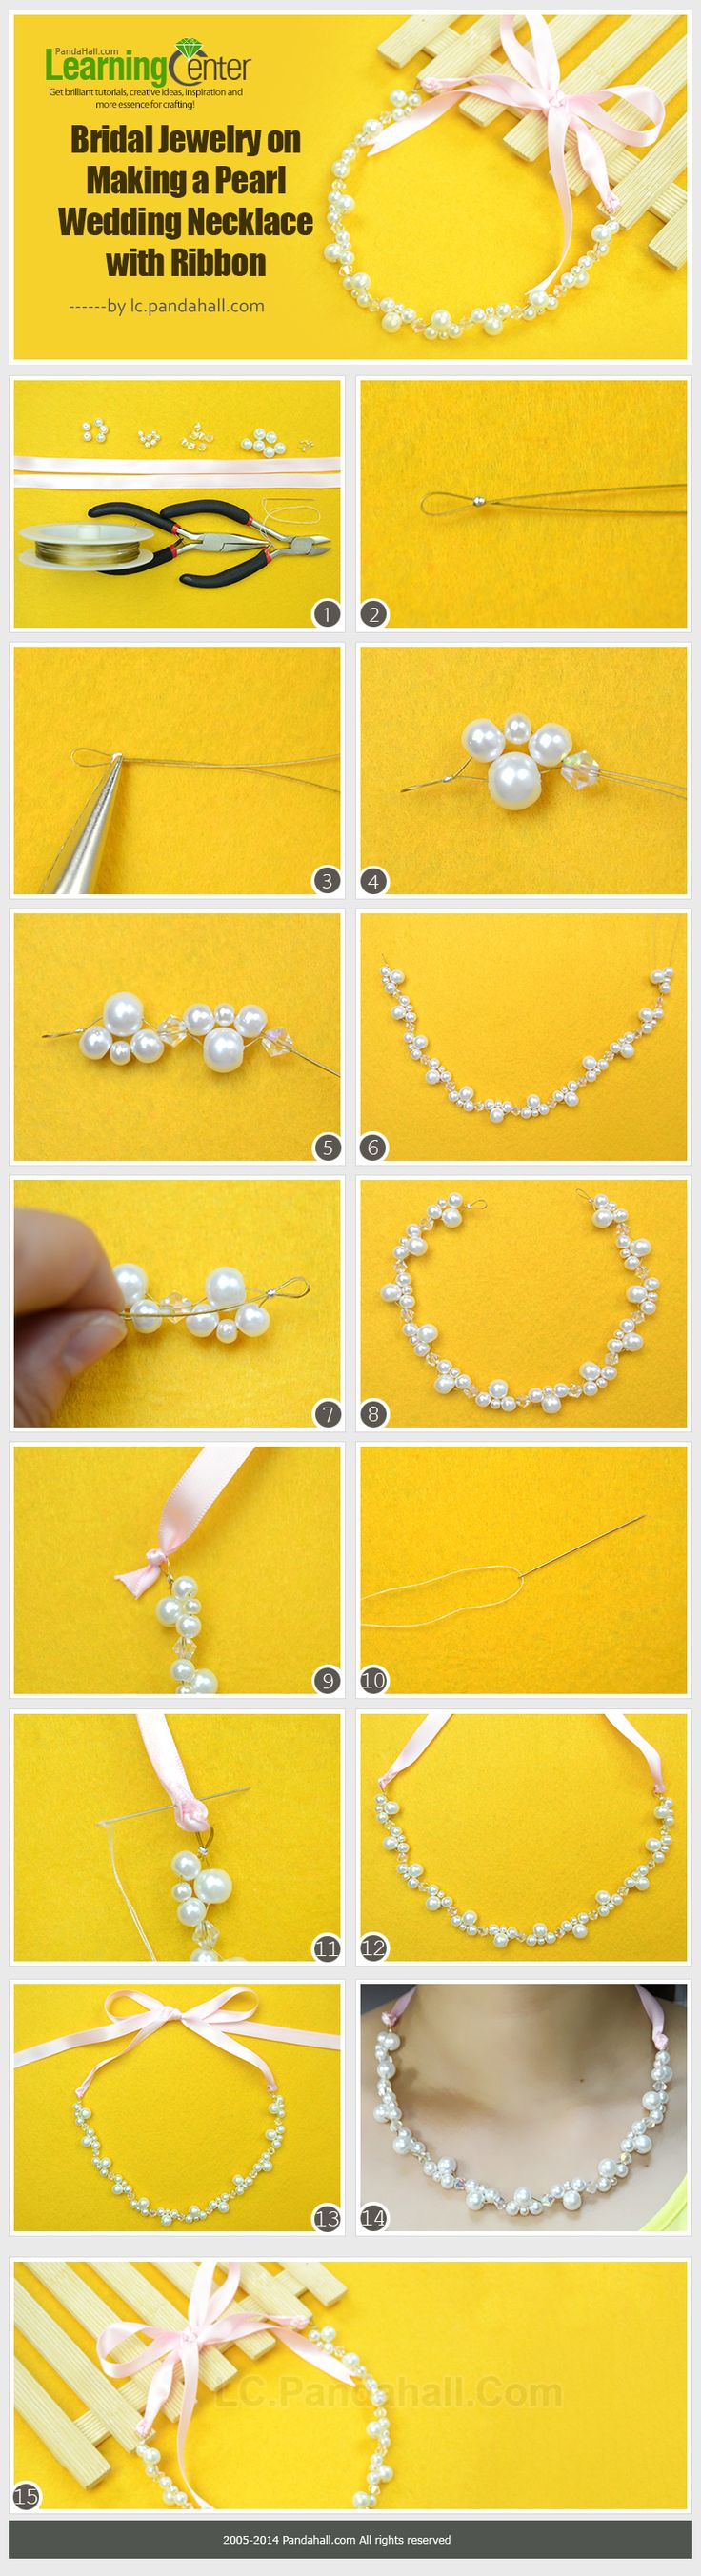 Bridal Jewelry on Making a Pearl Wedding Necklace with Ribbon